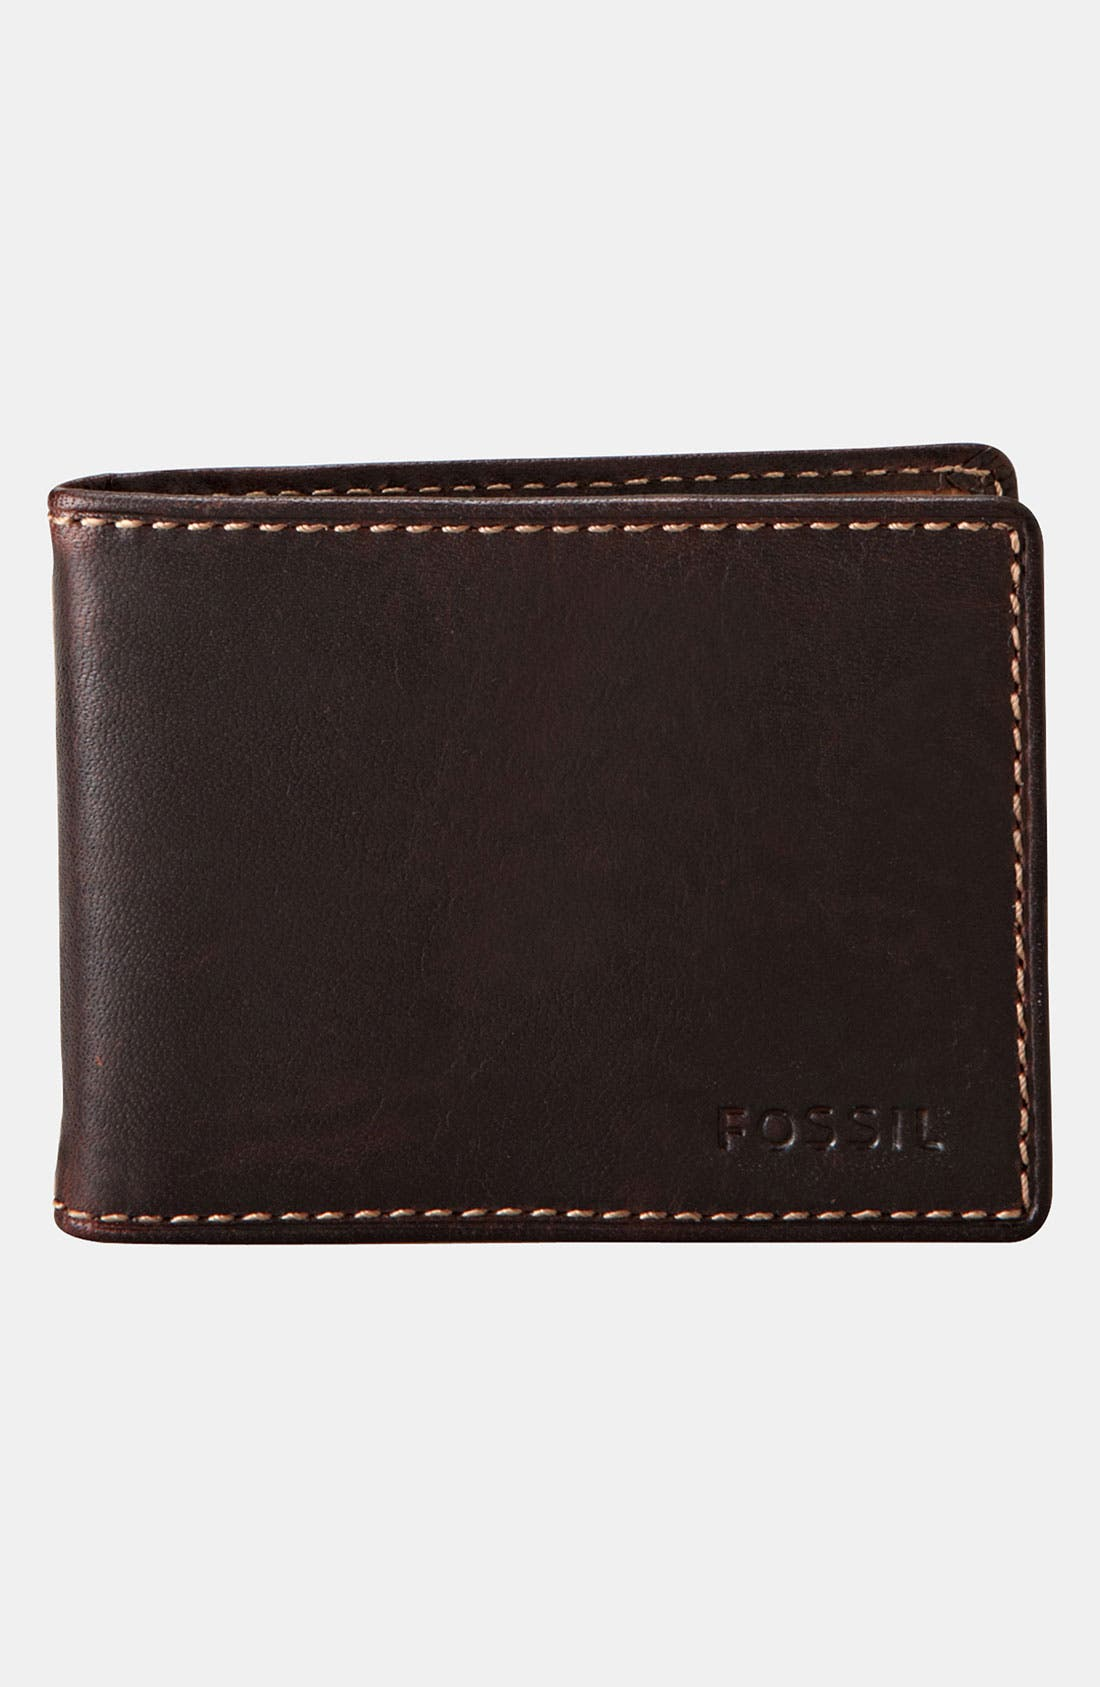 Alternate Image 1 Selected - Fossil 'Gusset' Money Clip Wallet